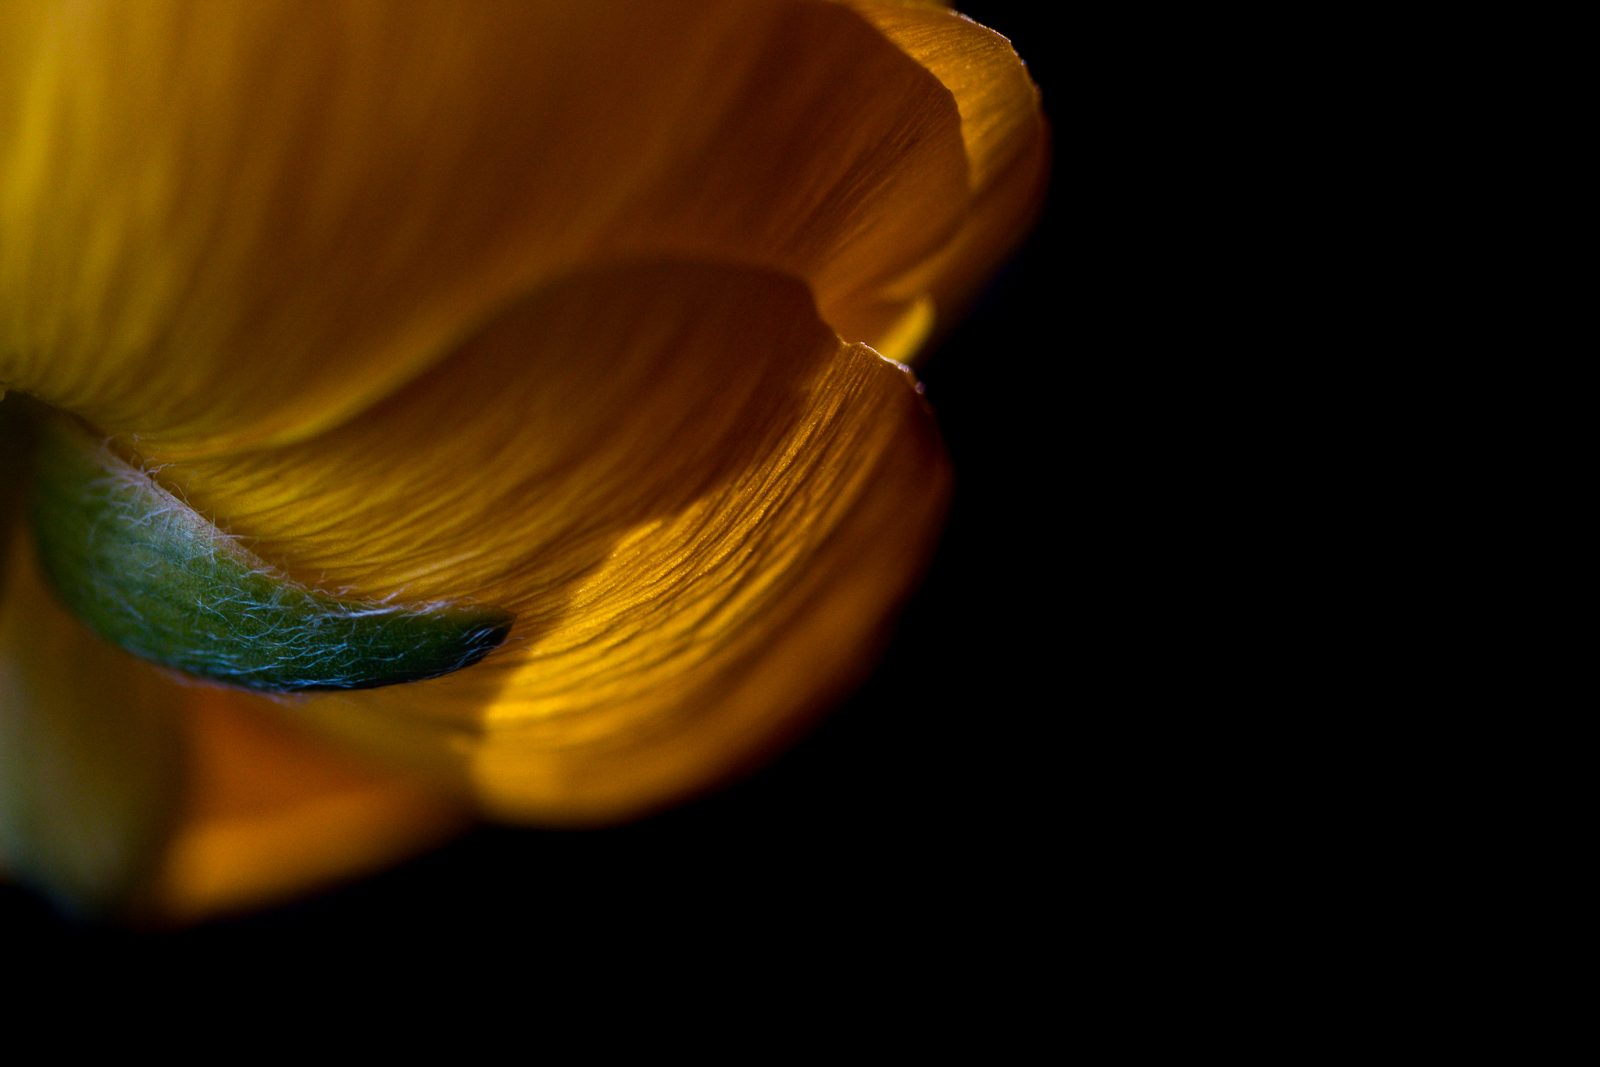 Light on Yellow Ranunculus